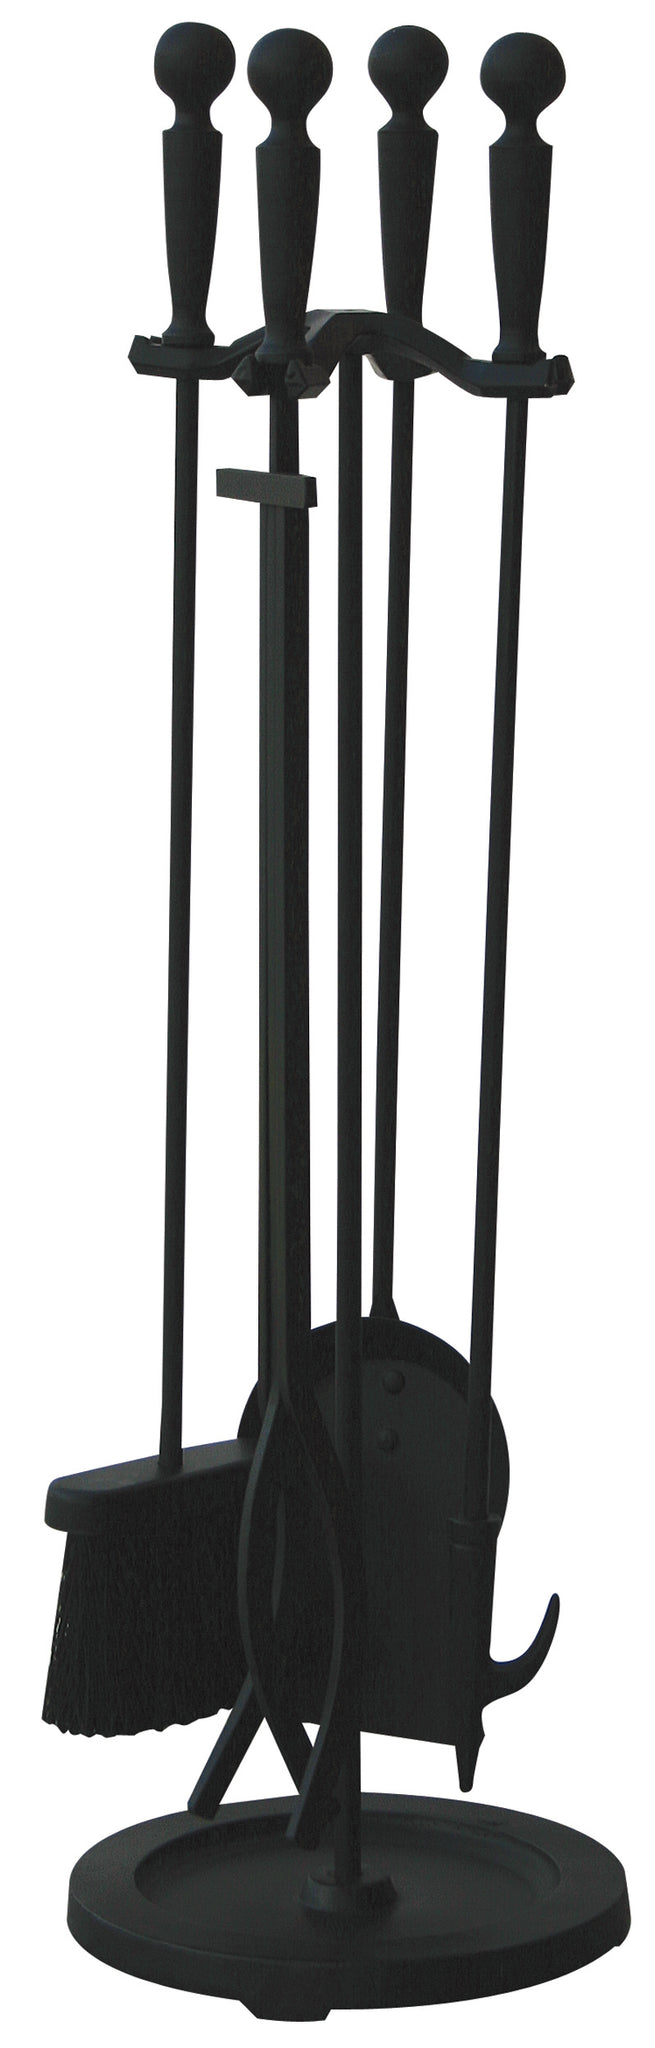 5 PC BRUSHED BLACK FINISH FIRESET WITH DOUBLE RODS  F-1583B - PATIO AND FIREPLACE CONCEPTS